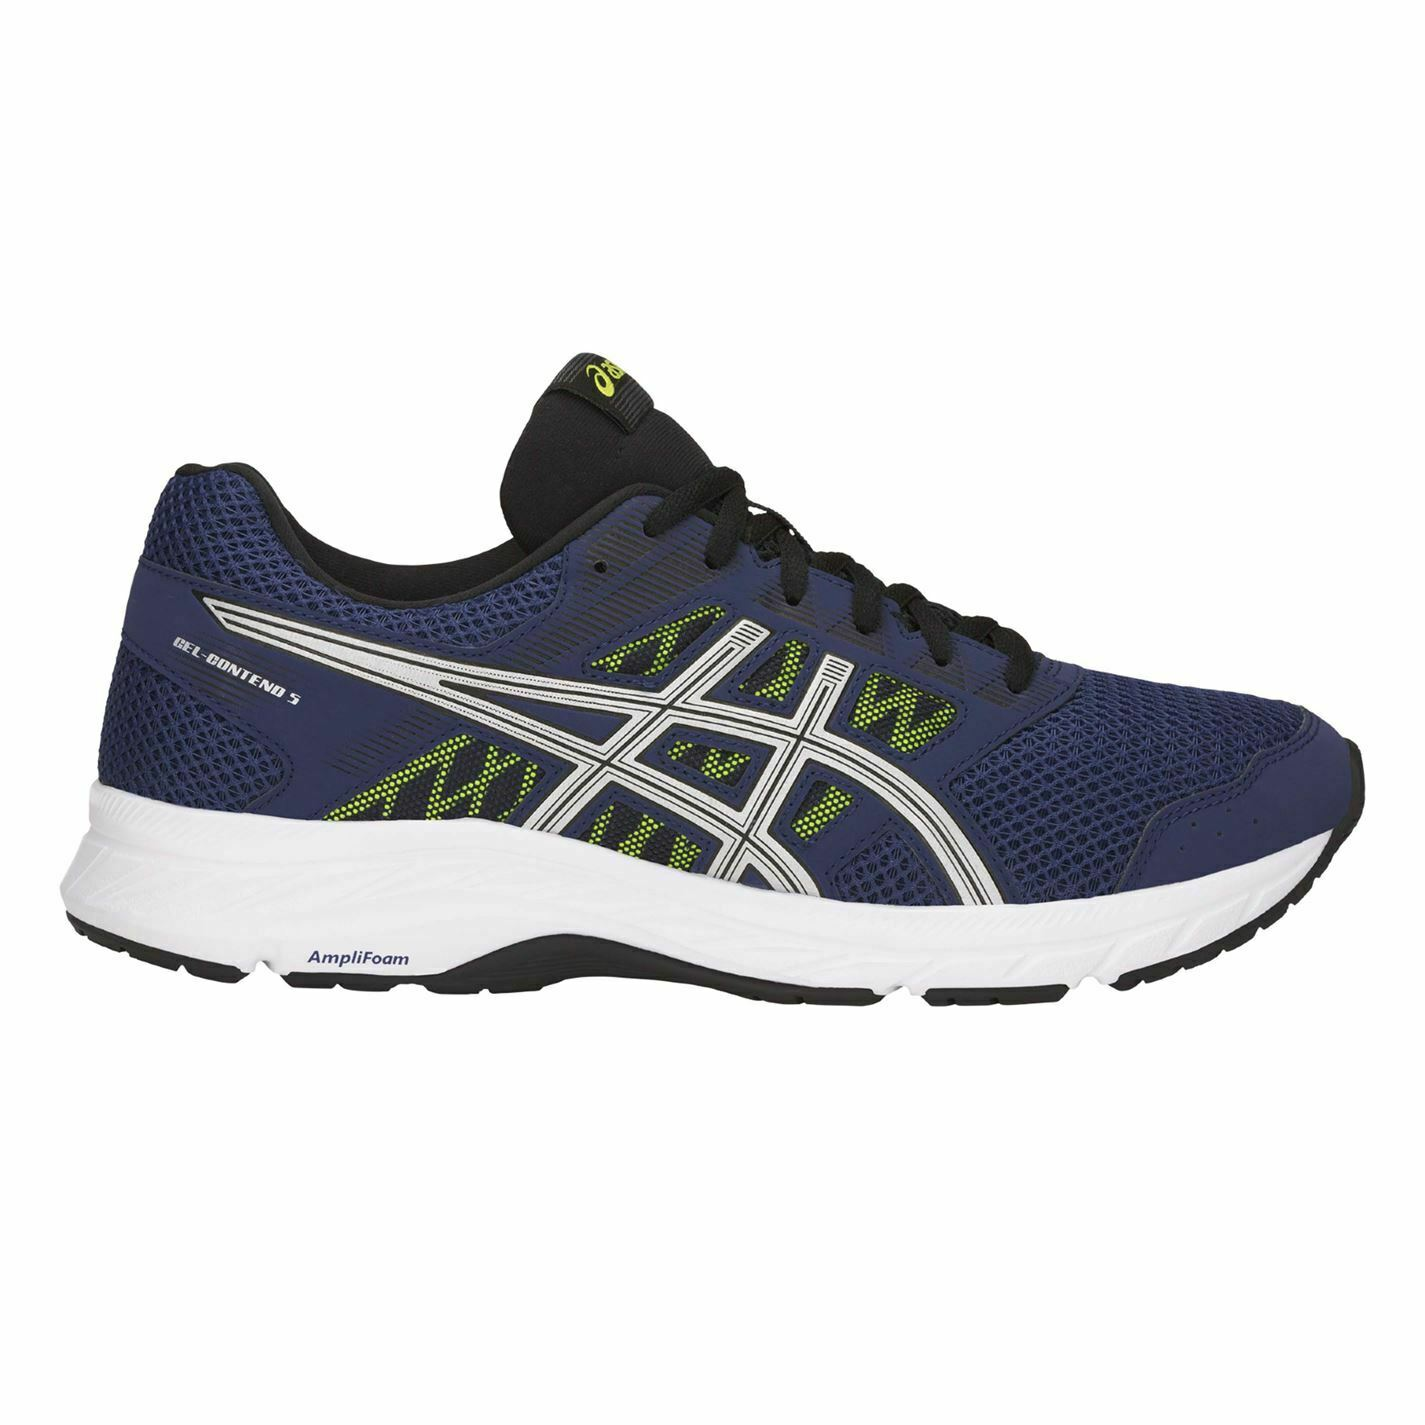 Asics Mens Gel Contend 5 Lace Up Trainers Sports Sports Sports Running schuhe Runners c1eb0f